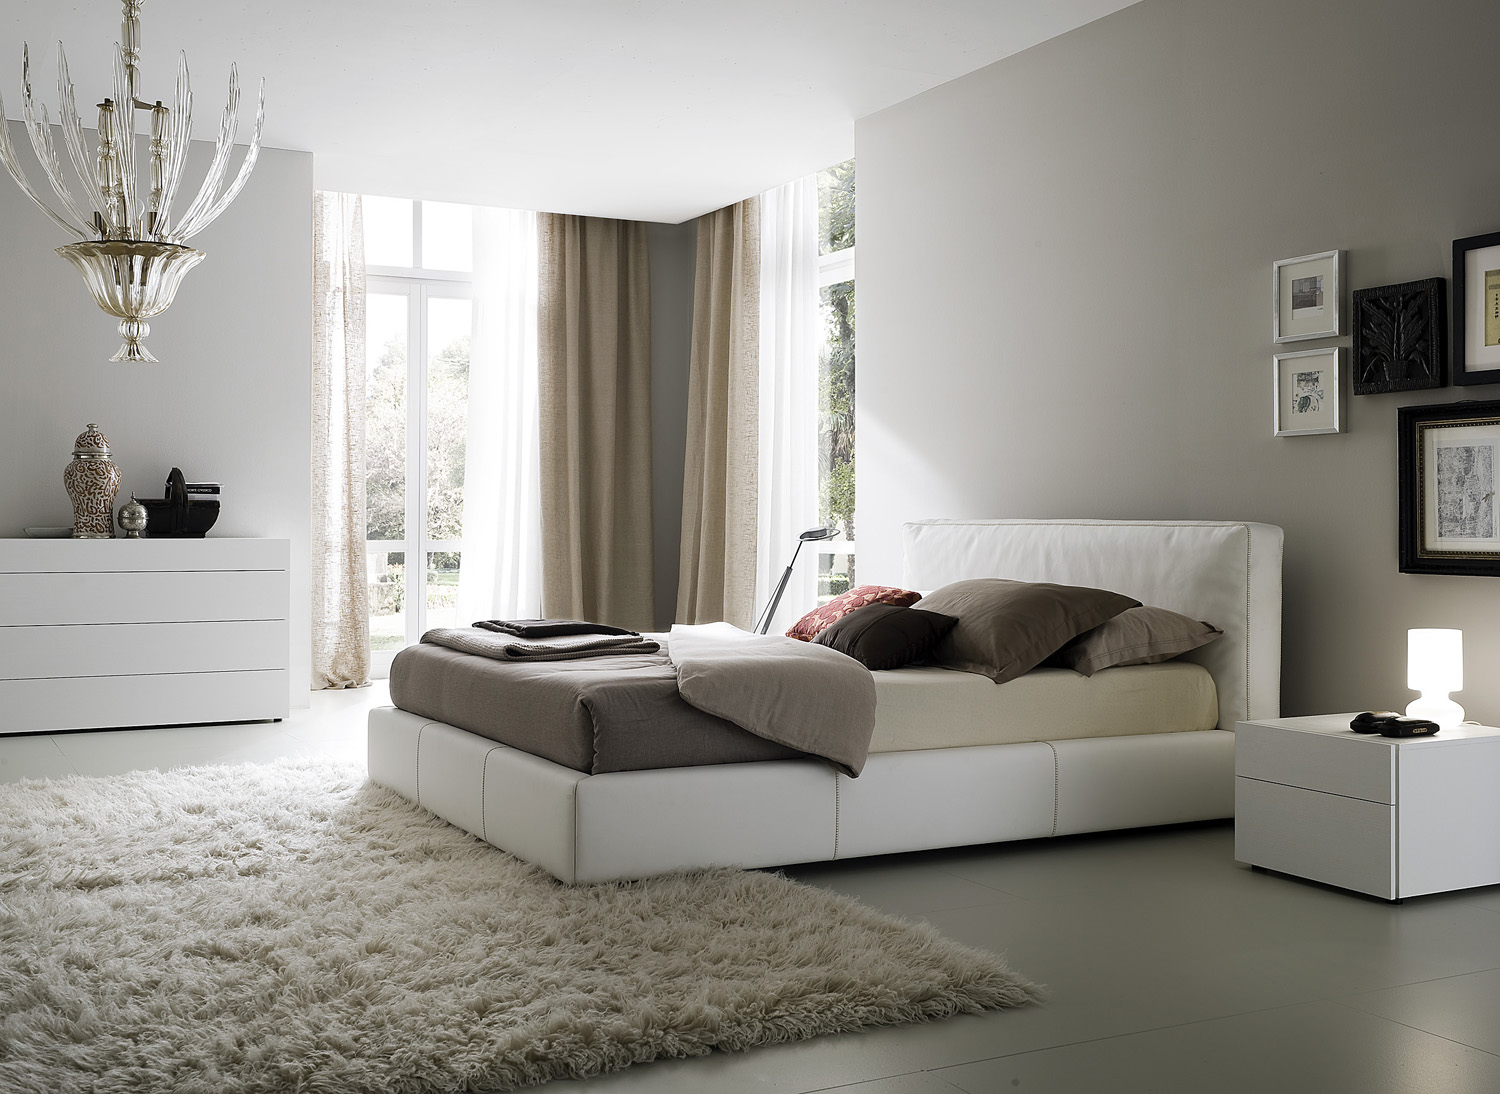 Bed Room bedroom decorating ideas from evinco